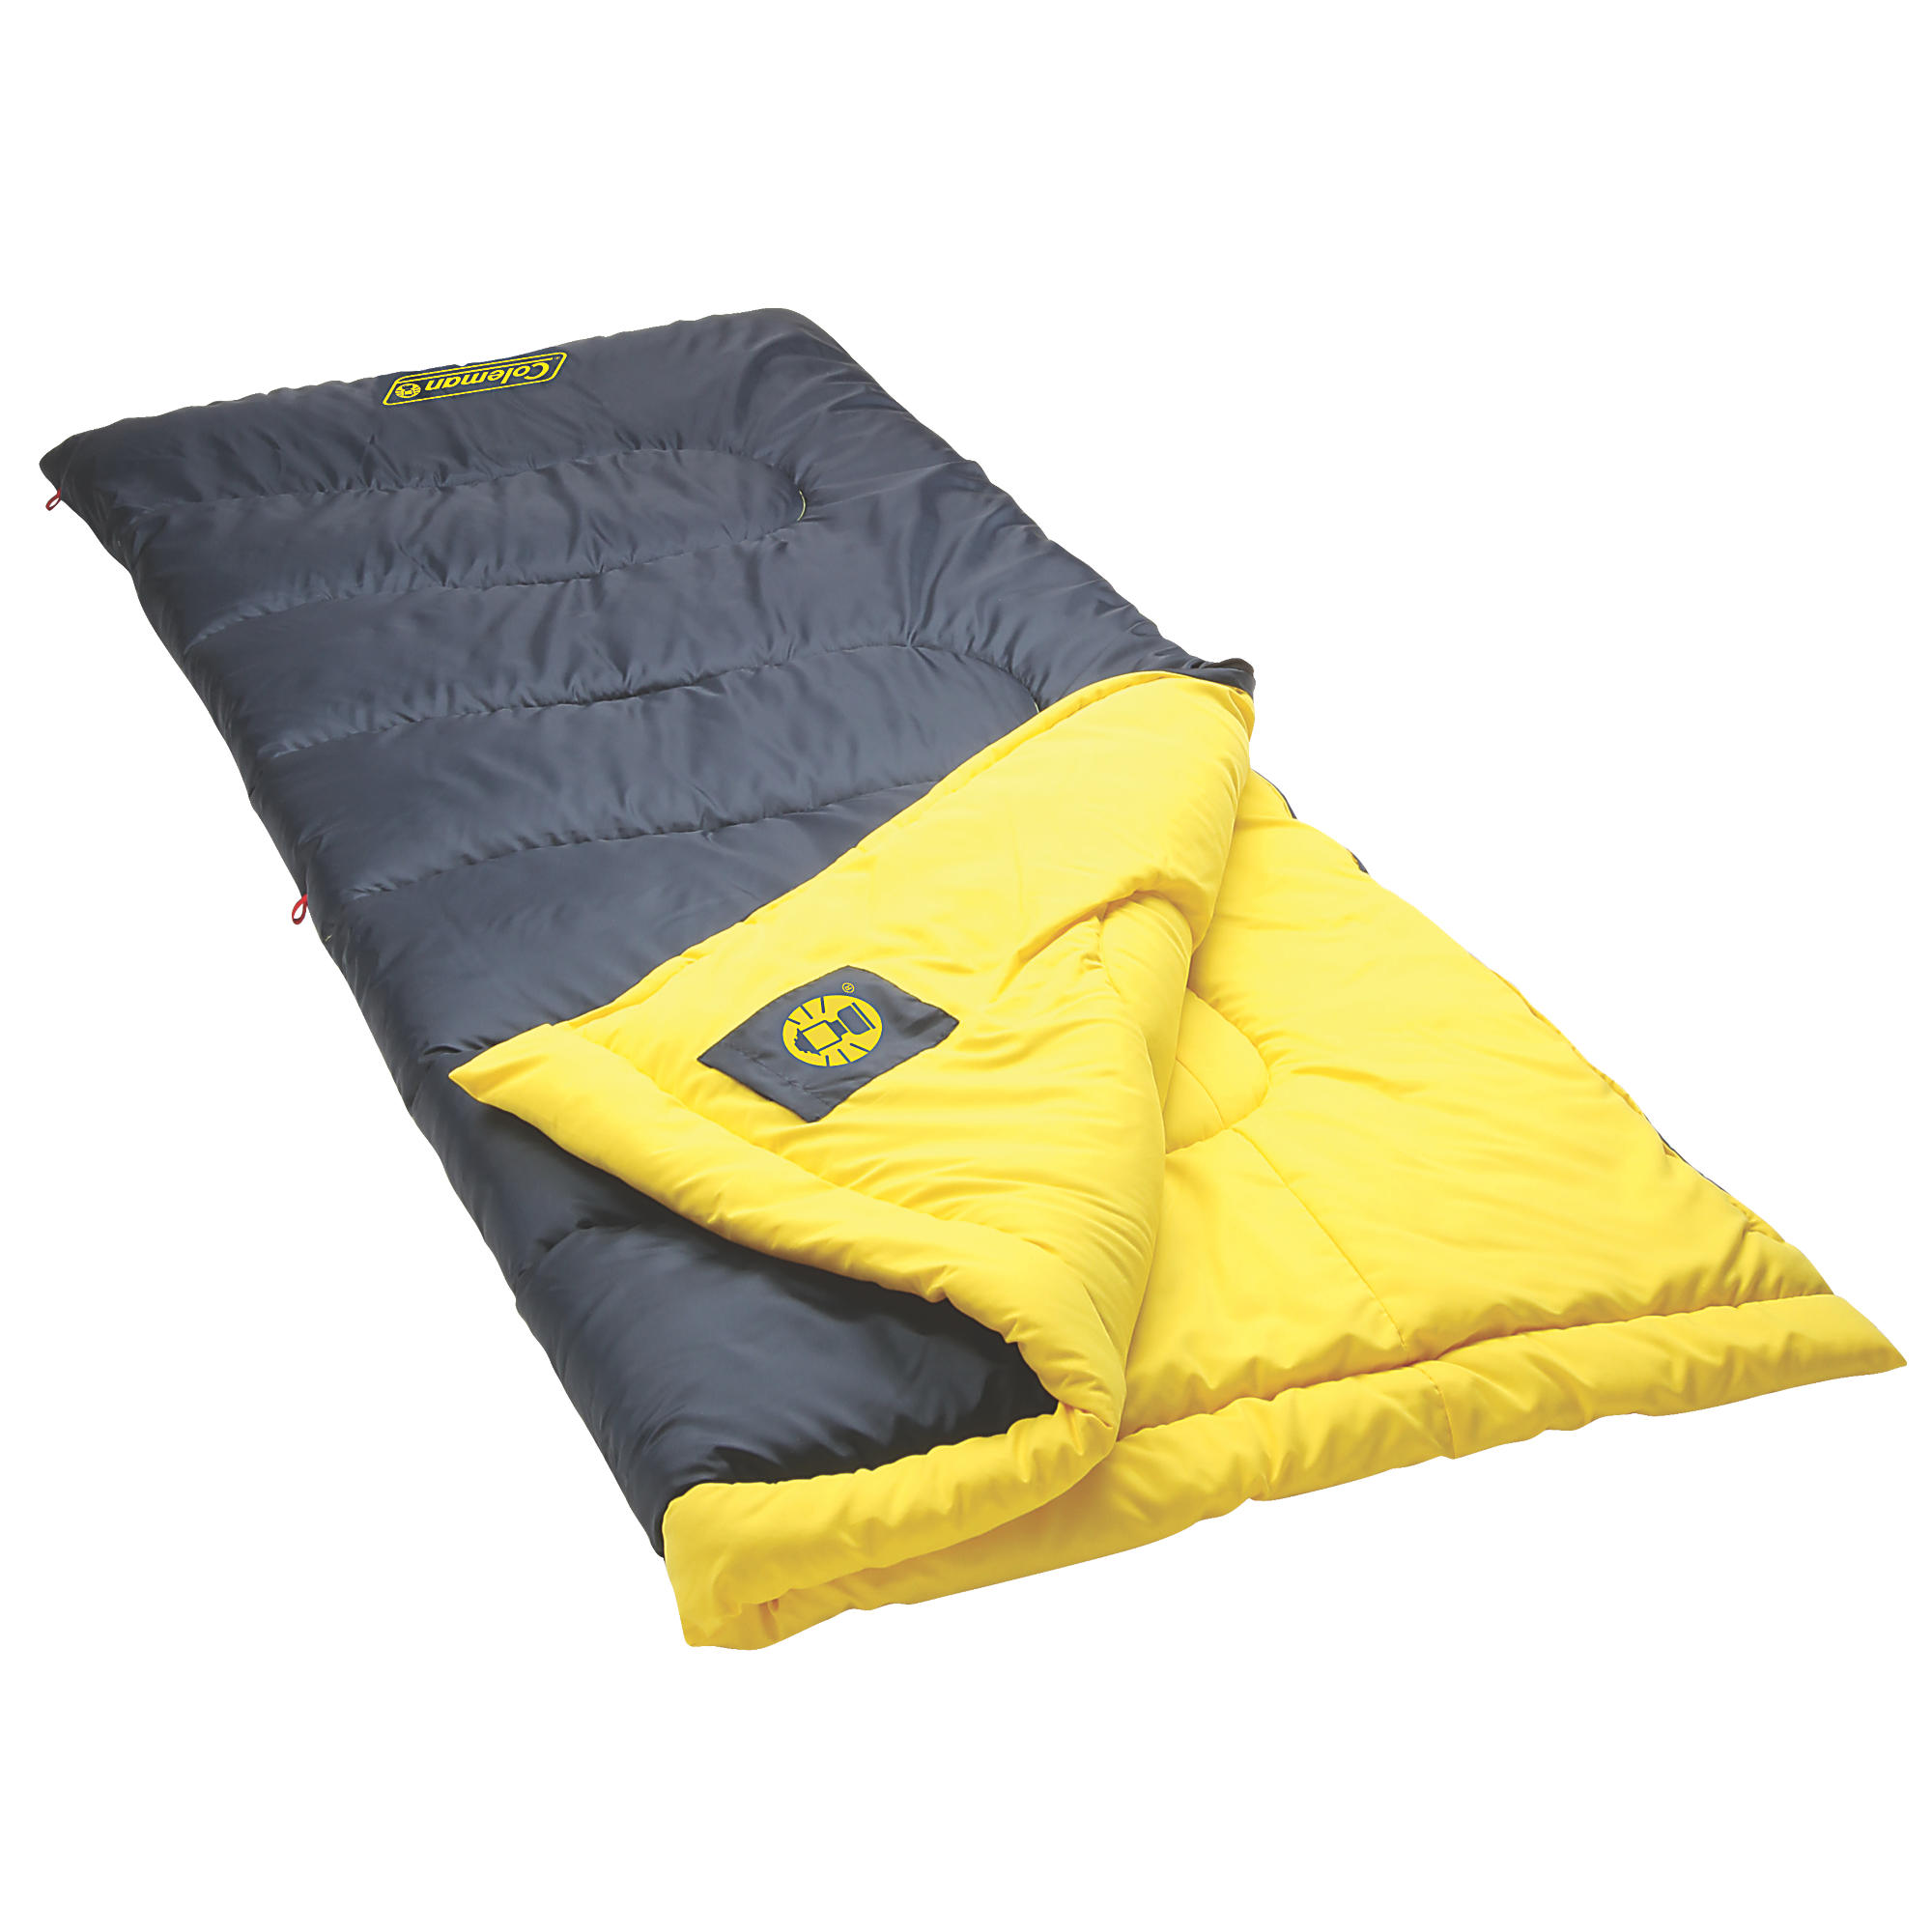 Palmetto Sleeping Bag